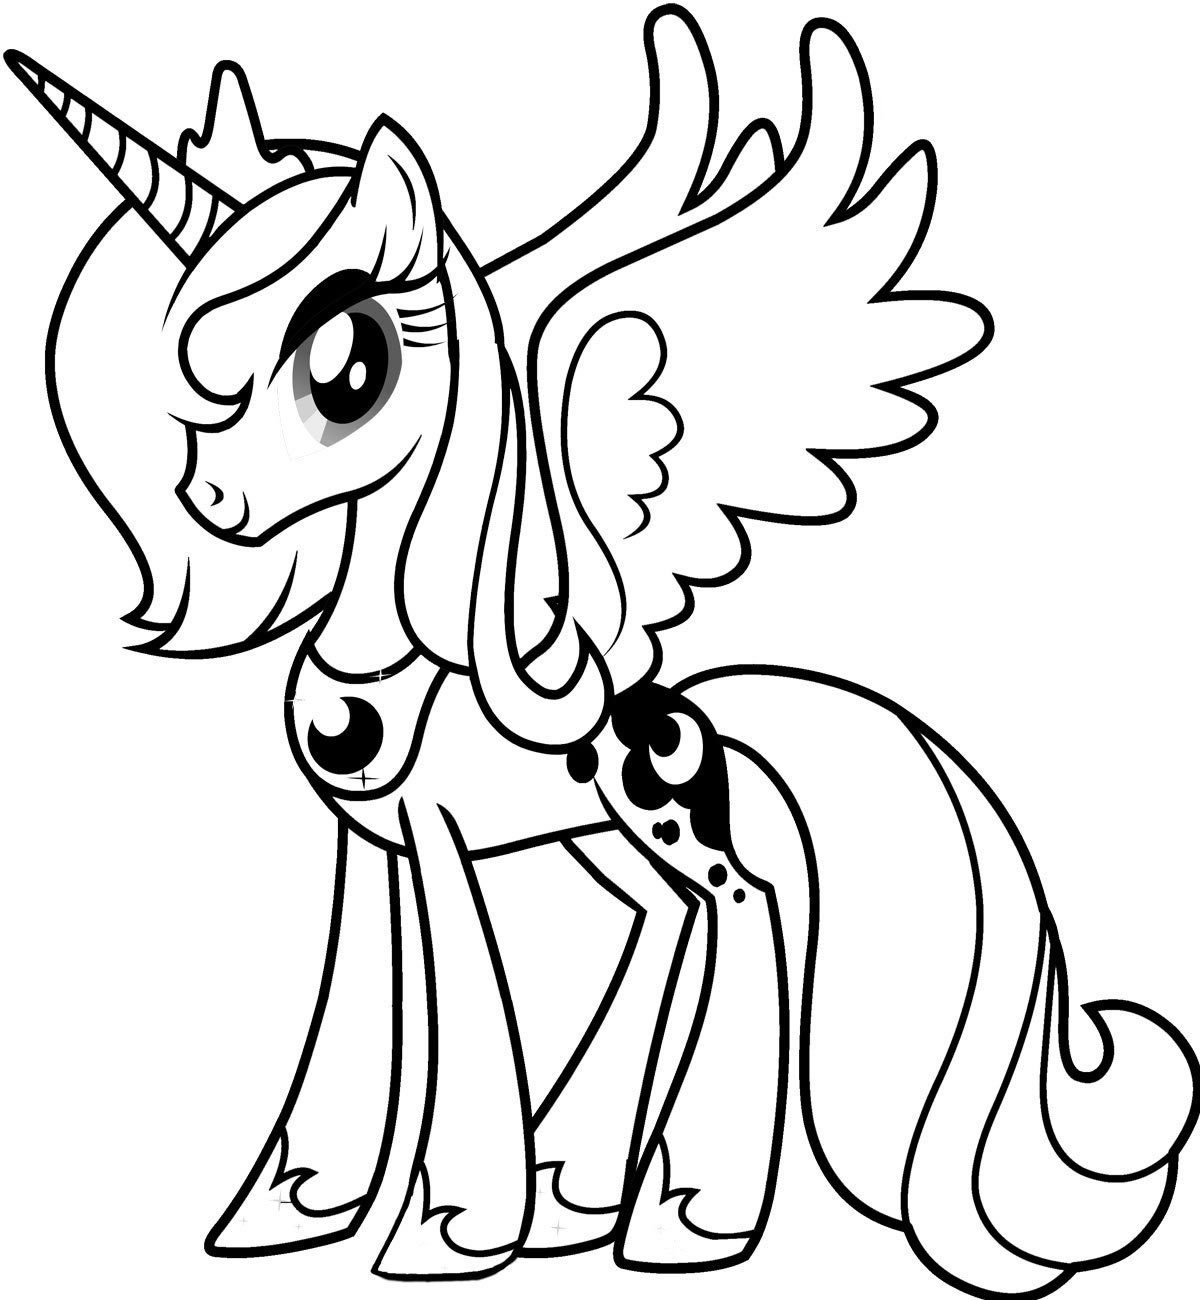 ponny coloring pages Free Printable My Little Pony Coloring Pages For Kids ponny coloring pages